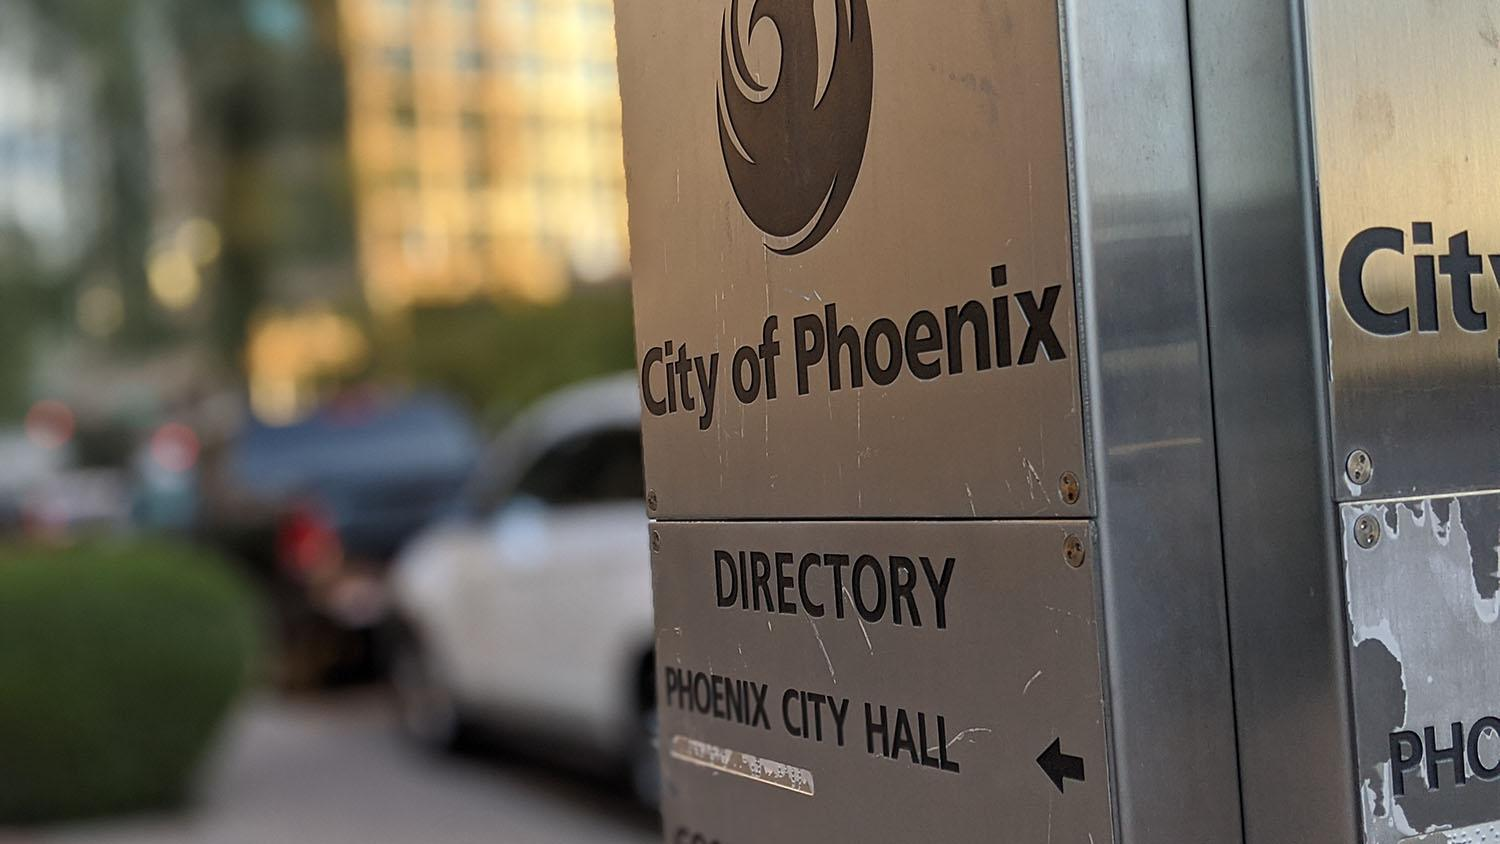 A directory in downtown Phoenix points in the direction of Phoenix City Hall